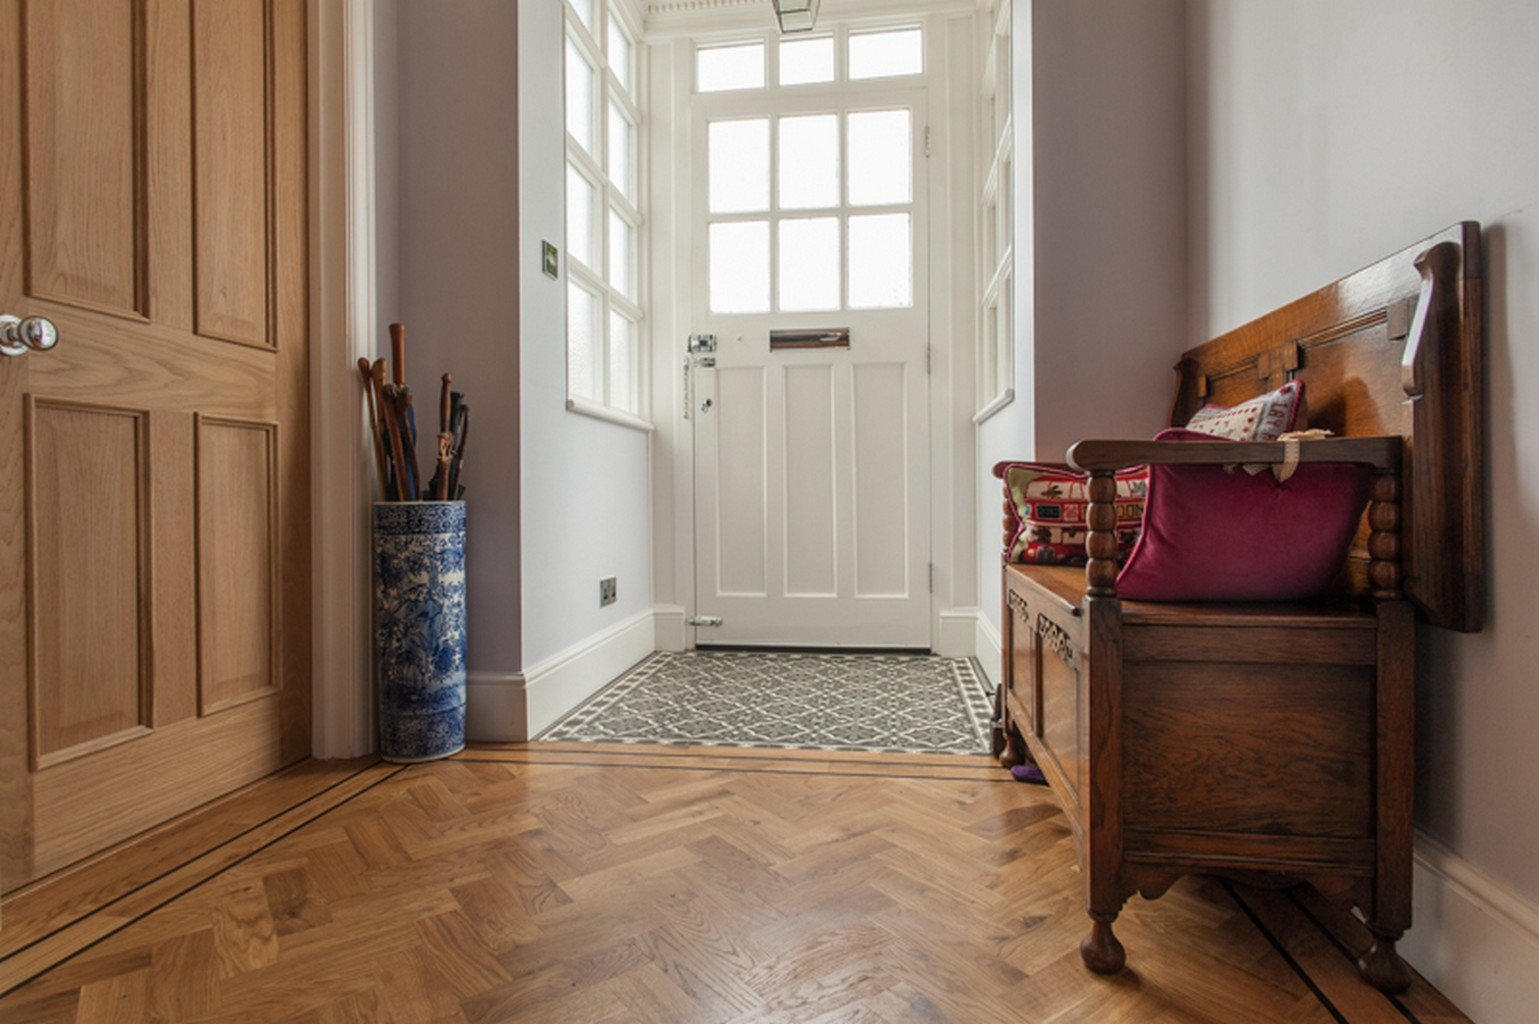 herringbone wood flooring in entranceway